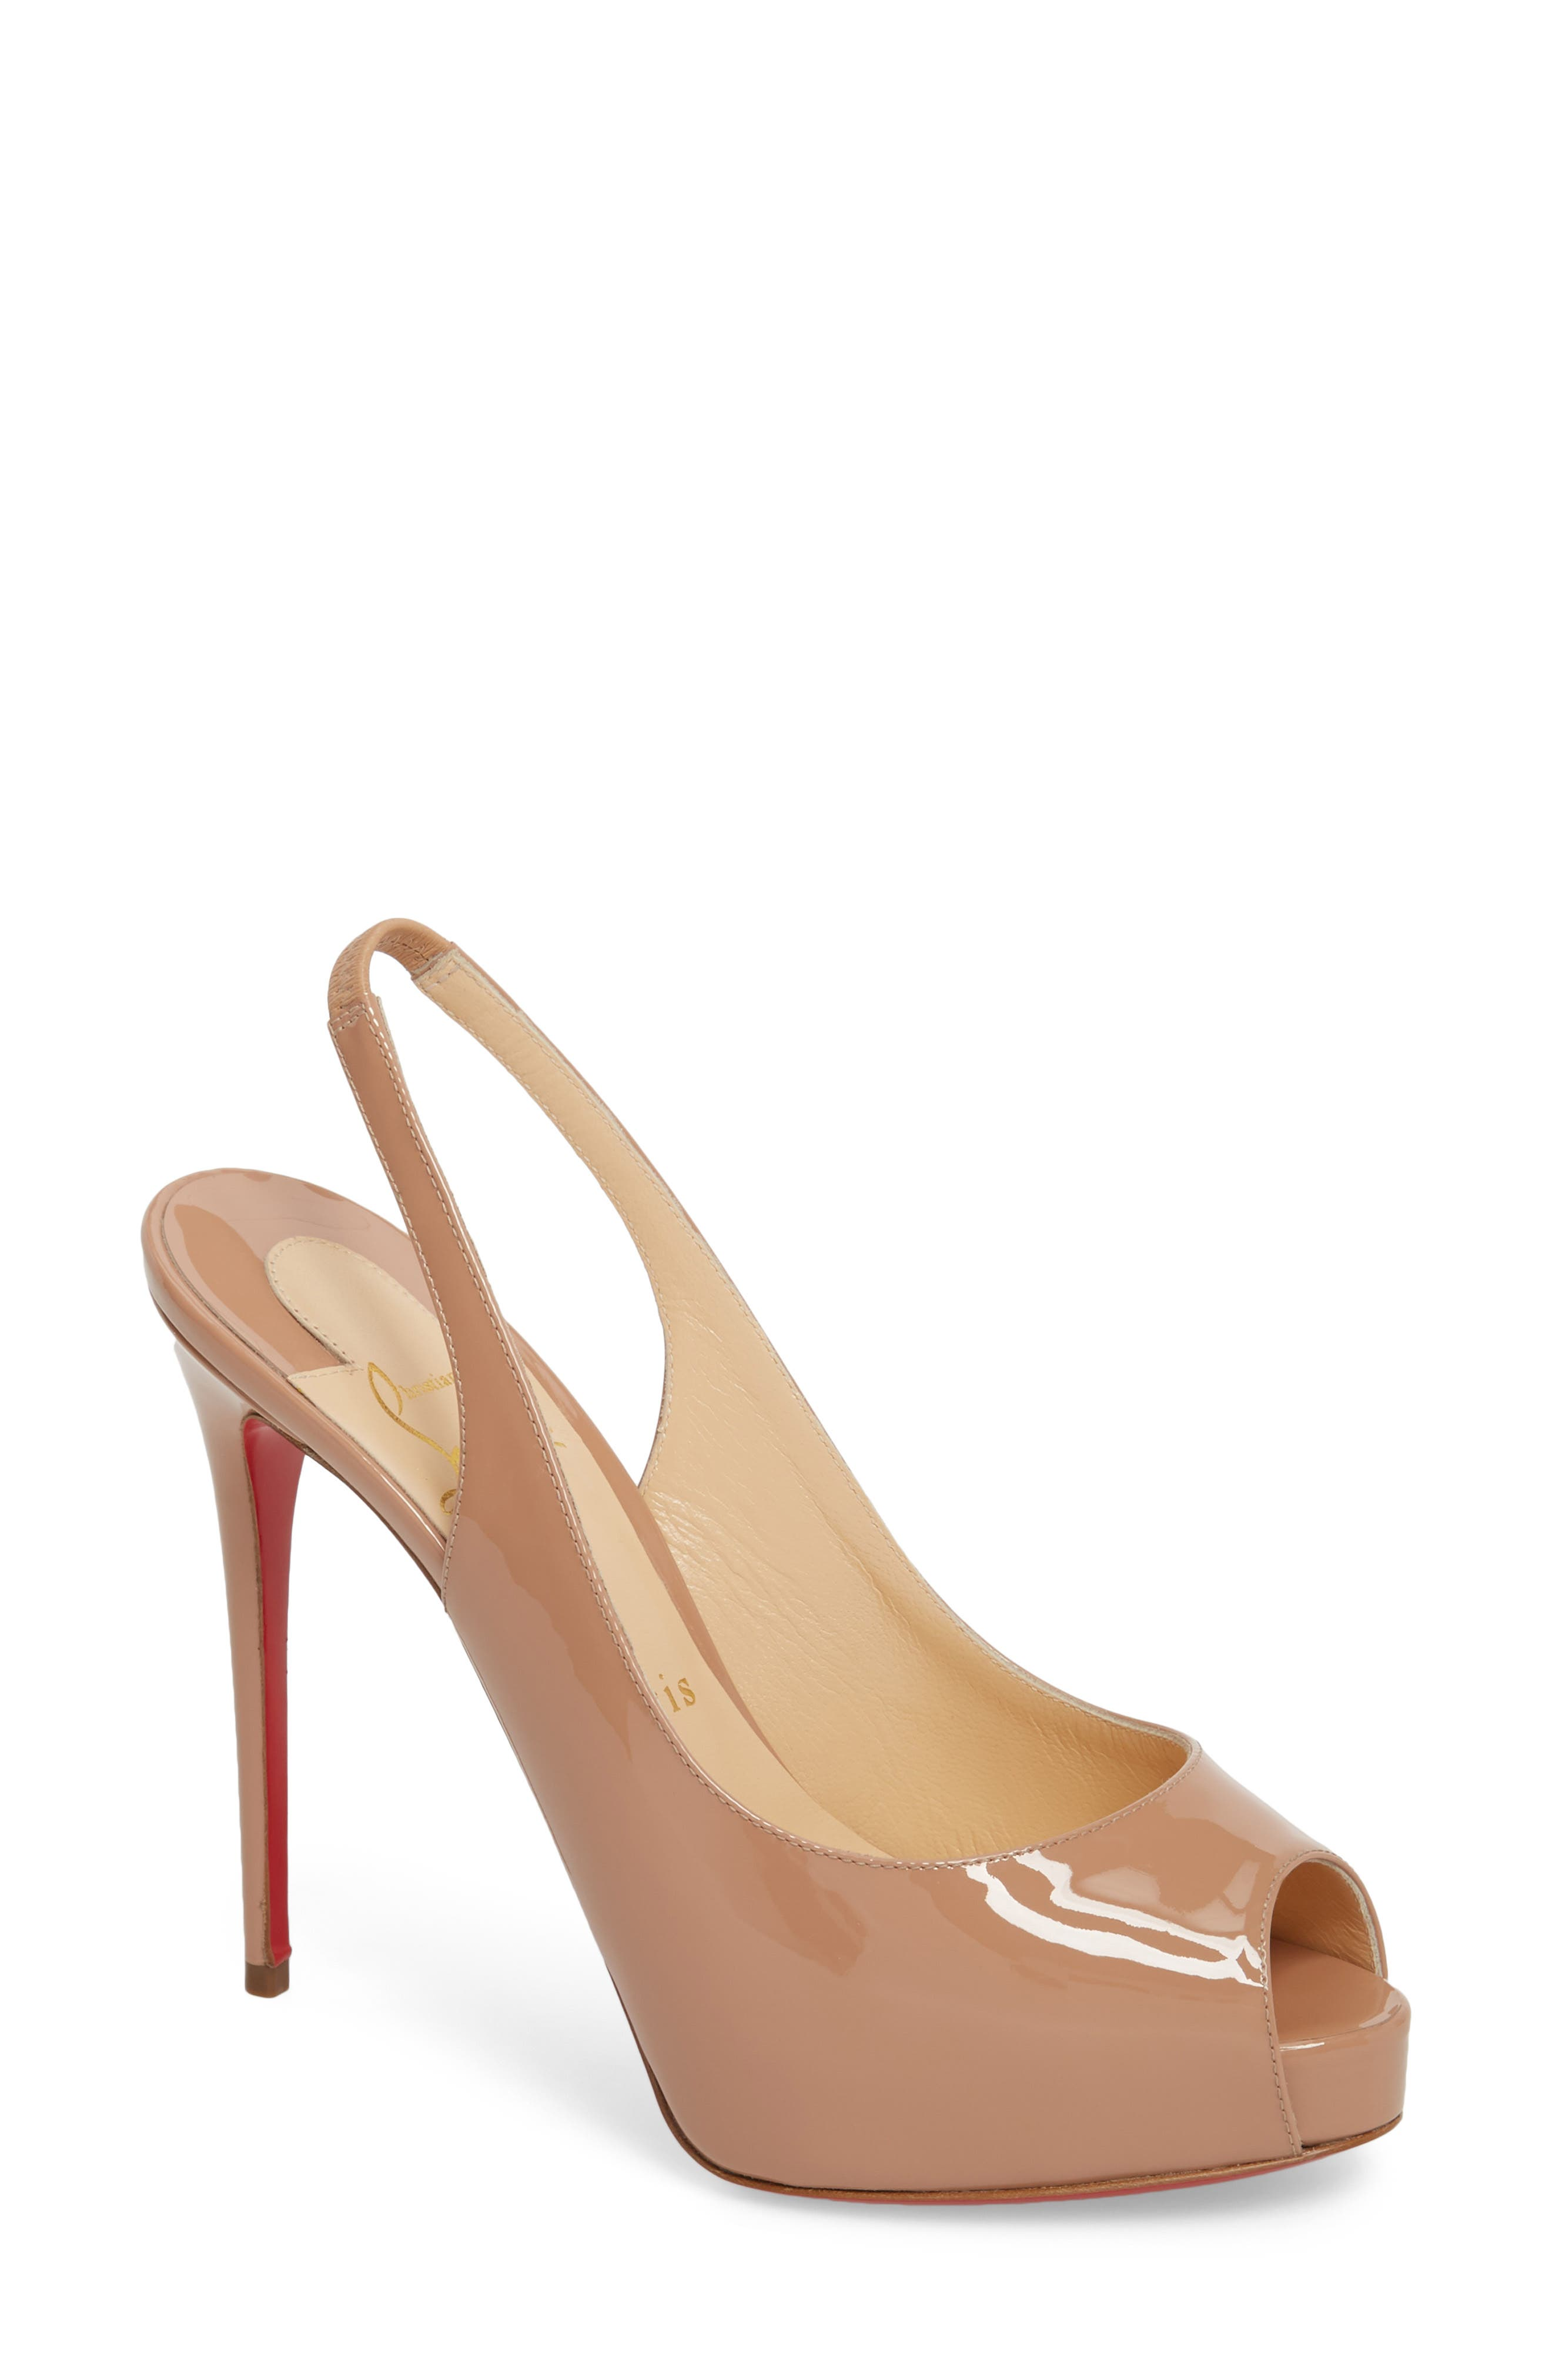 CHRISTIAN LOUBOUTIN Private Number Peep Toe Pump, Main, color, NUDE